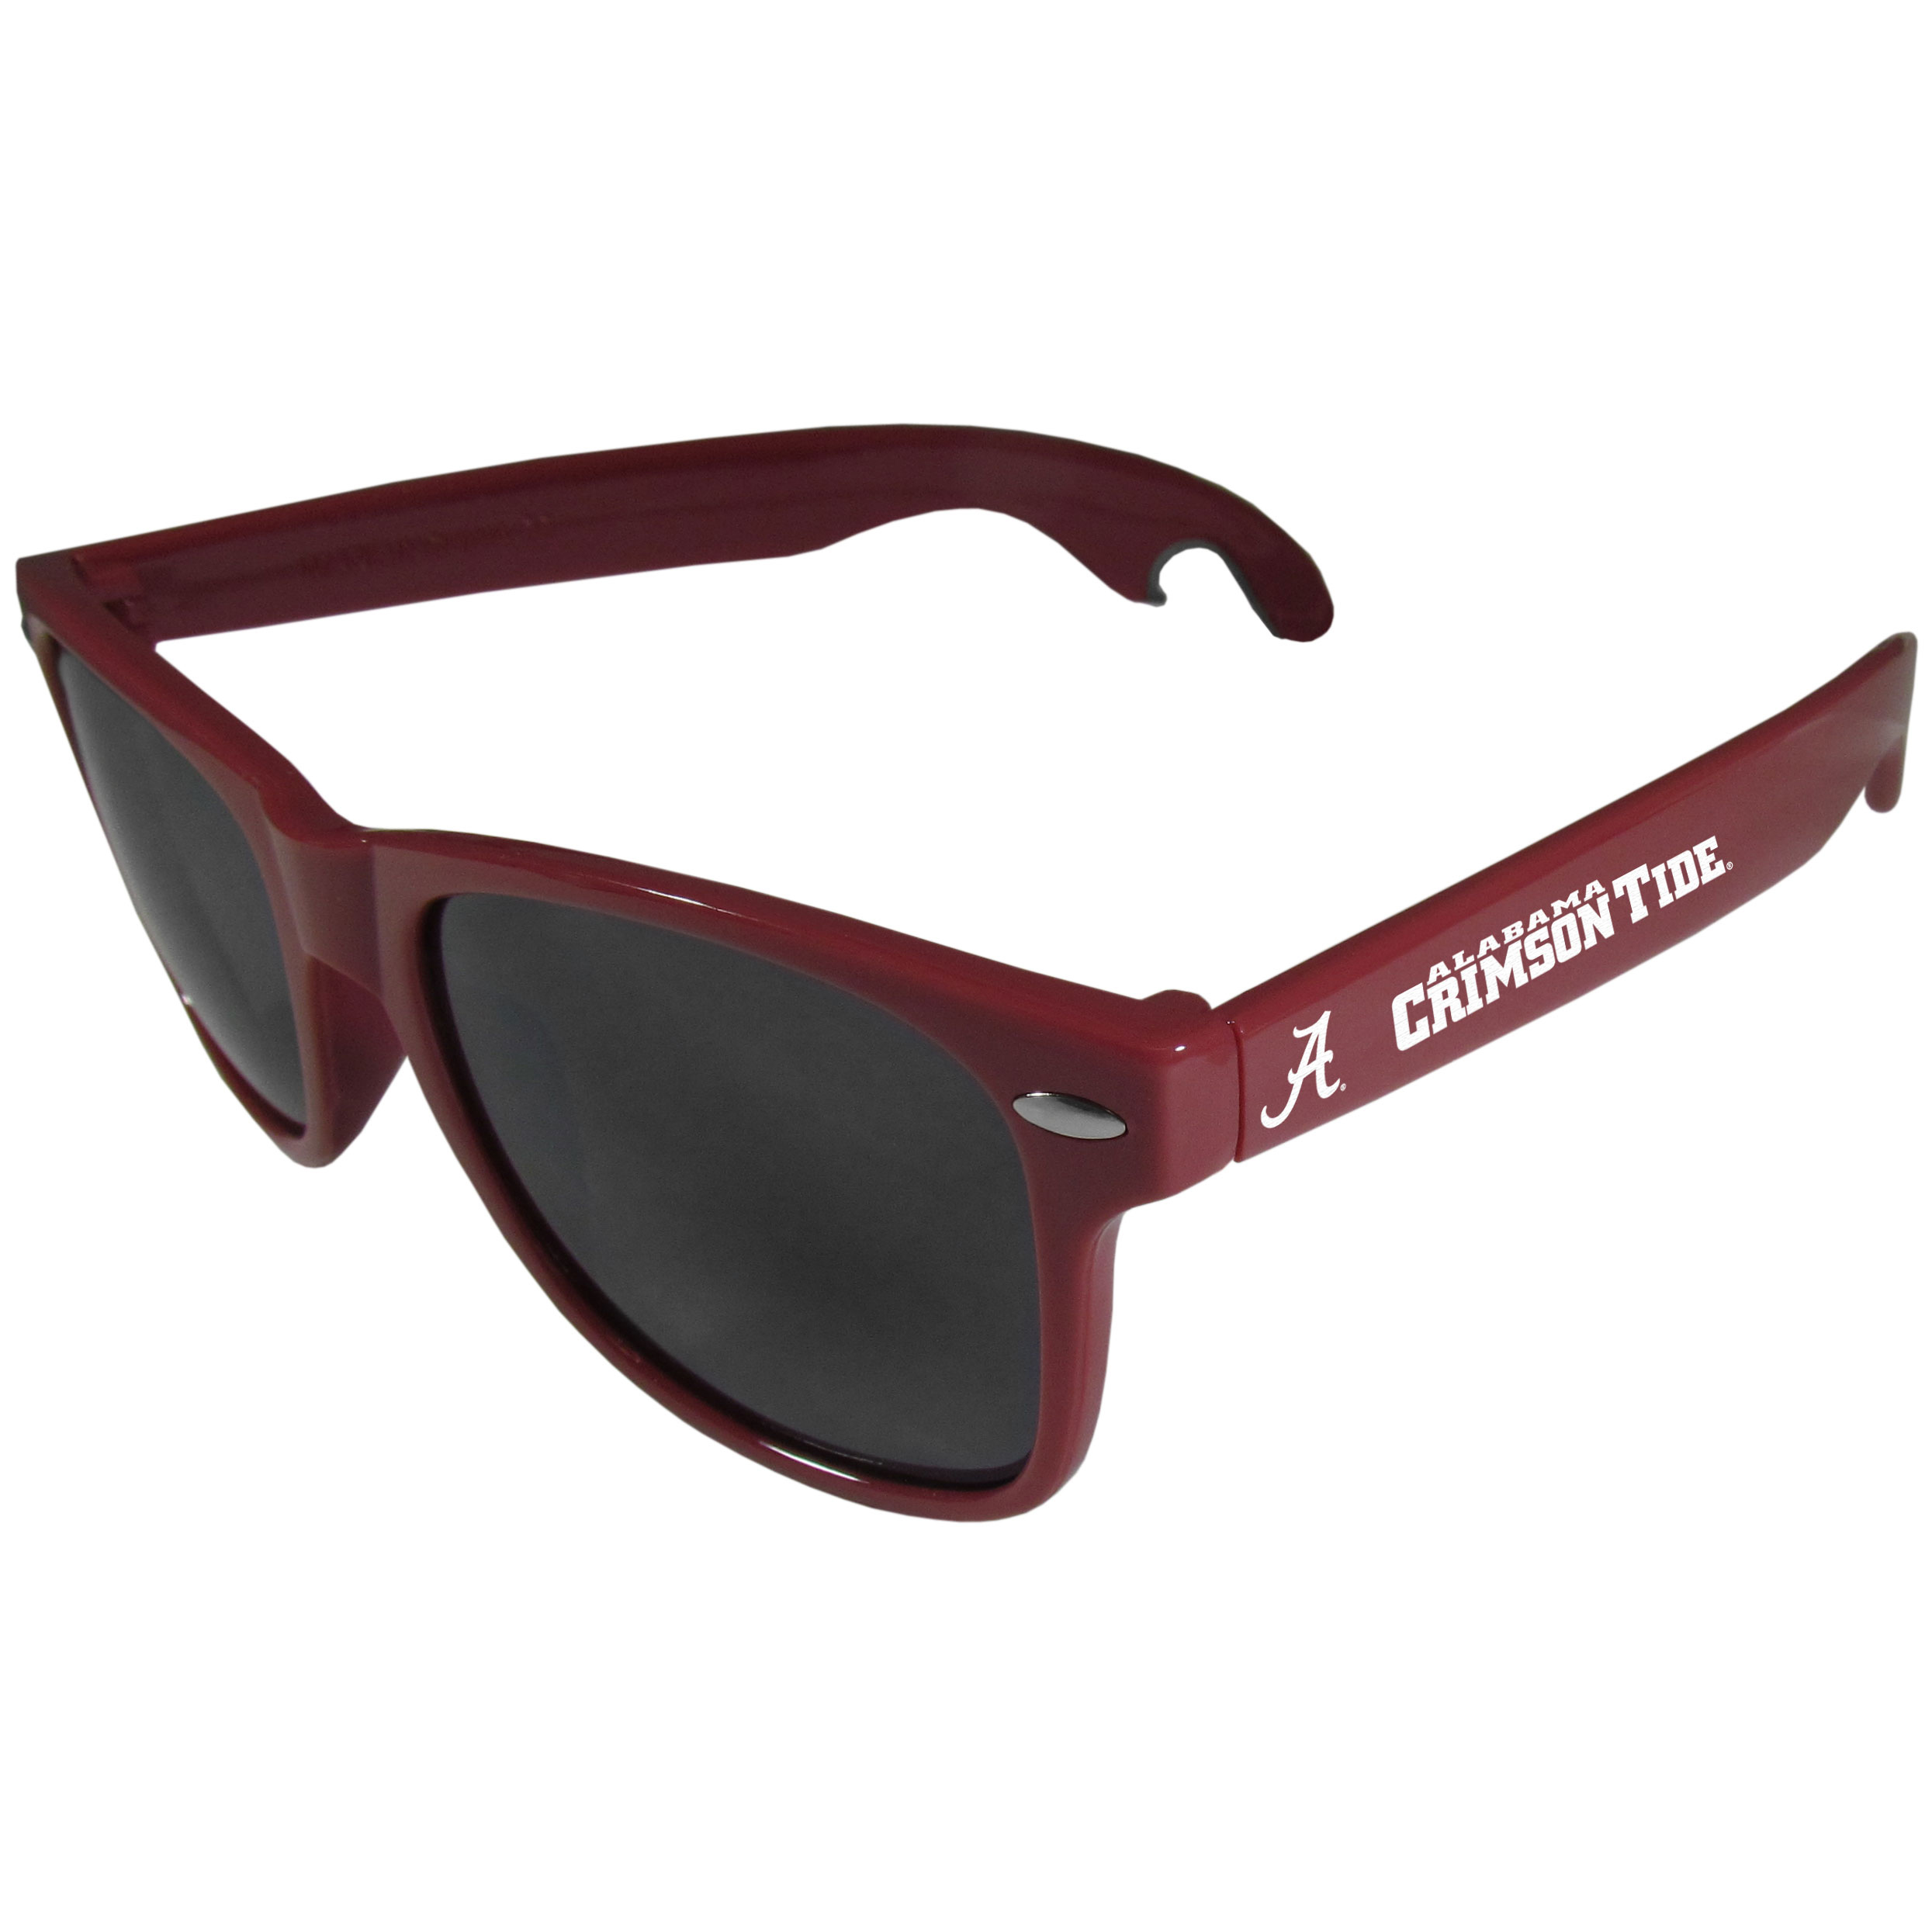 Alabama Crimson Tide Beachfarer Bottle Opener Sunglasses, Maroon - Seriously, these sunglasses open bottles! Keep the party going with these amazing Alabama Crimson Tide bottle opener sunglasses. The stylish retro frames feature team designs on the arms and functional bottle openers on the end of the arms. Whether you are at the beach or having a backyard BBQ on game day, these shades will keep your eyes protected with 100% UVA/UVB protection and keep you hydrated with the handy bottle opener arms.